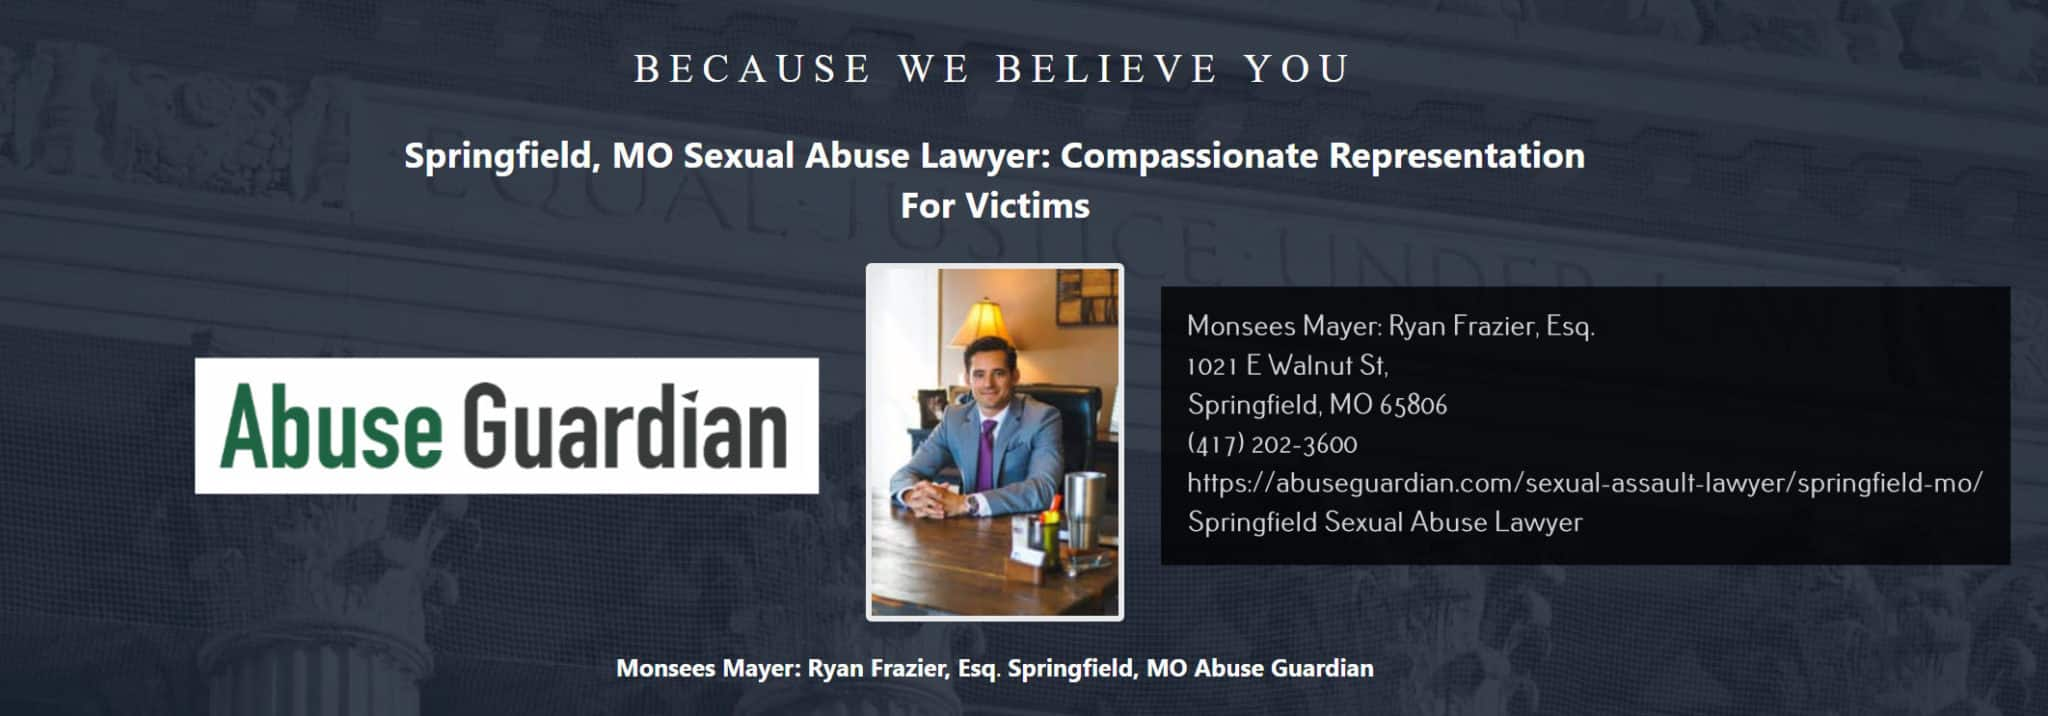 sexual abuse lawyer springfield monsees mayer ryan frazier, esq.